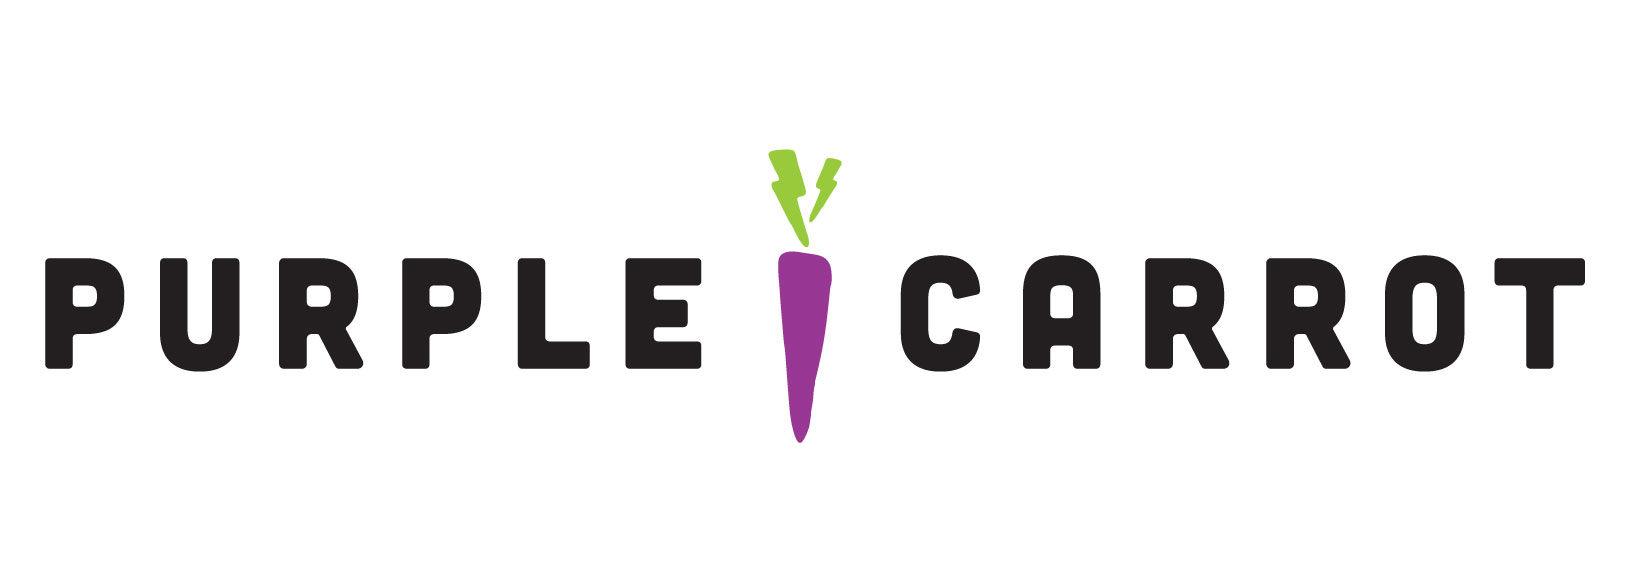 purple-carrot-logo.jpg